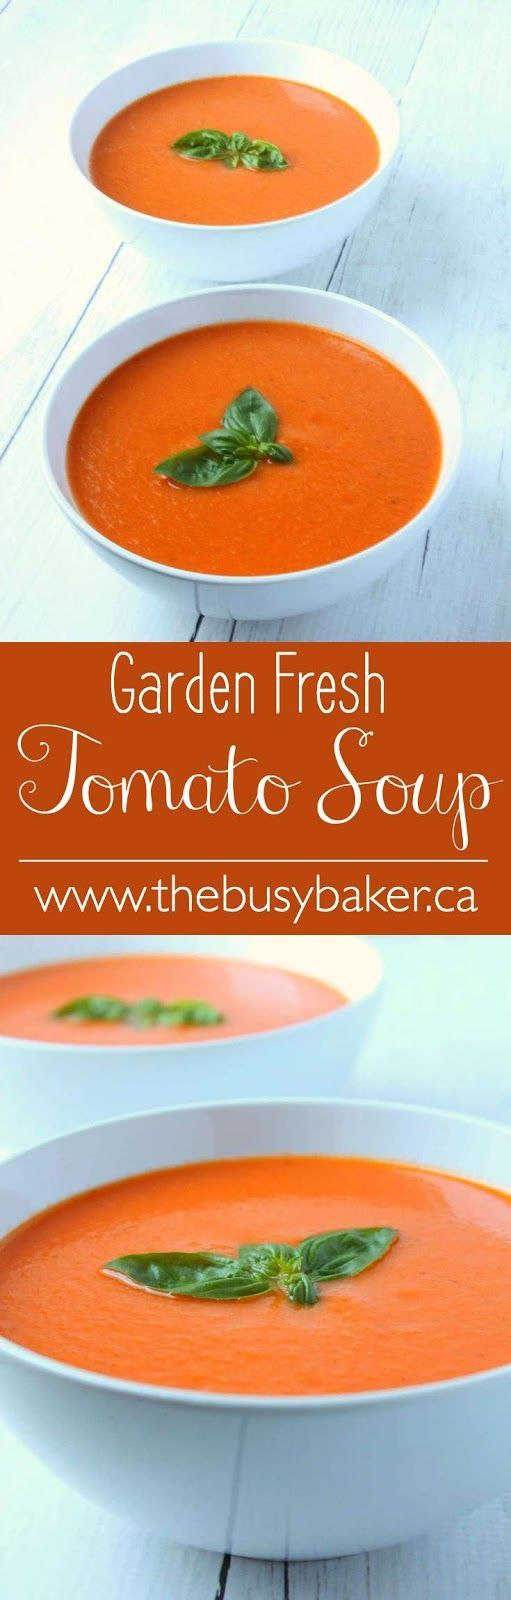 This Garden Fresh Tomato Soup is so easy to make and it's better than anything from a can! Recipe from thebusybaker.ca